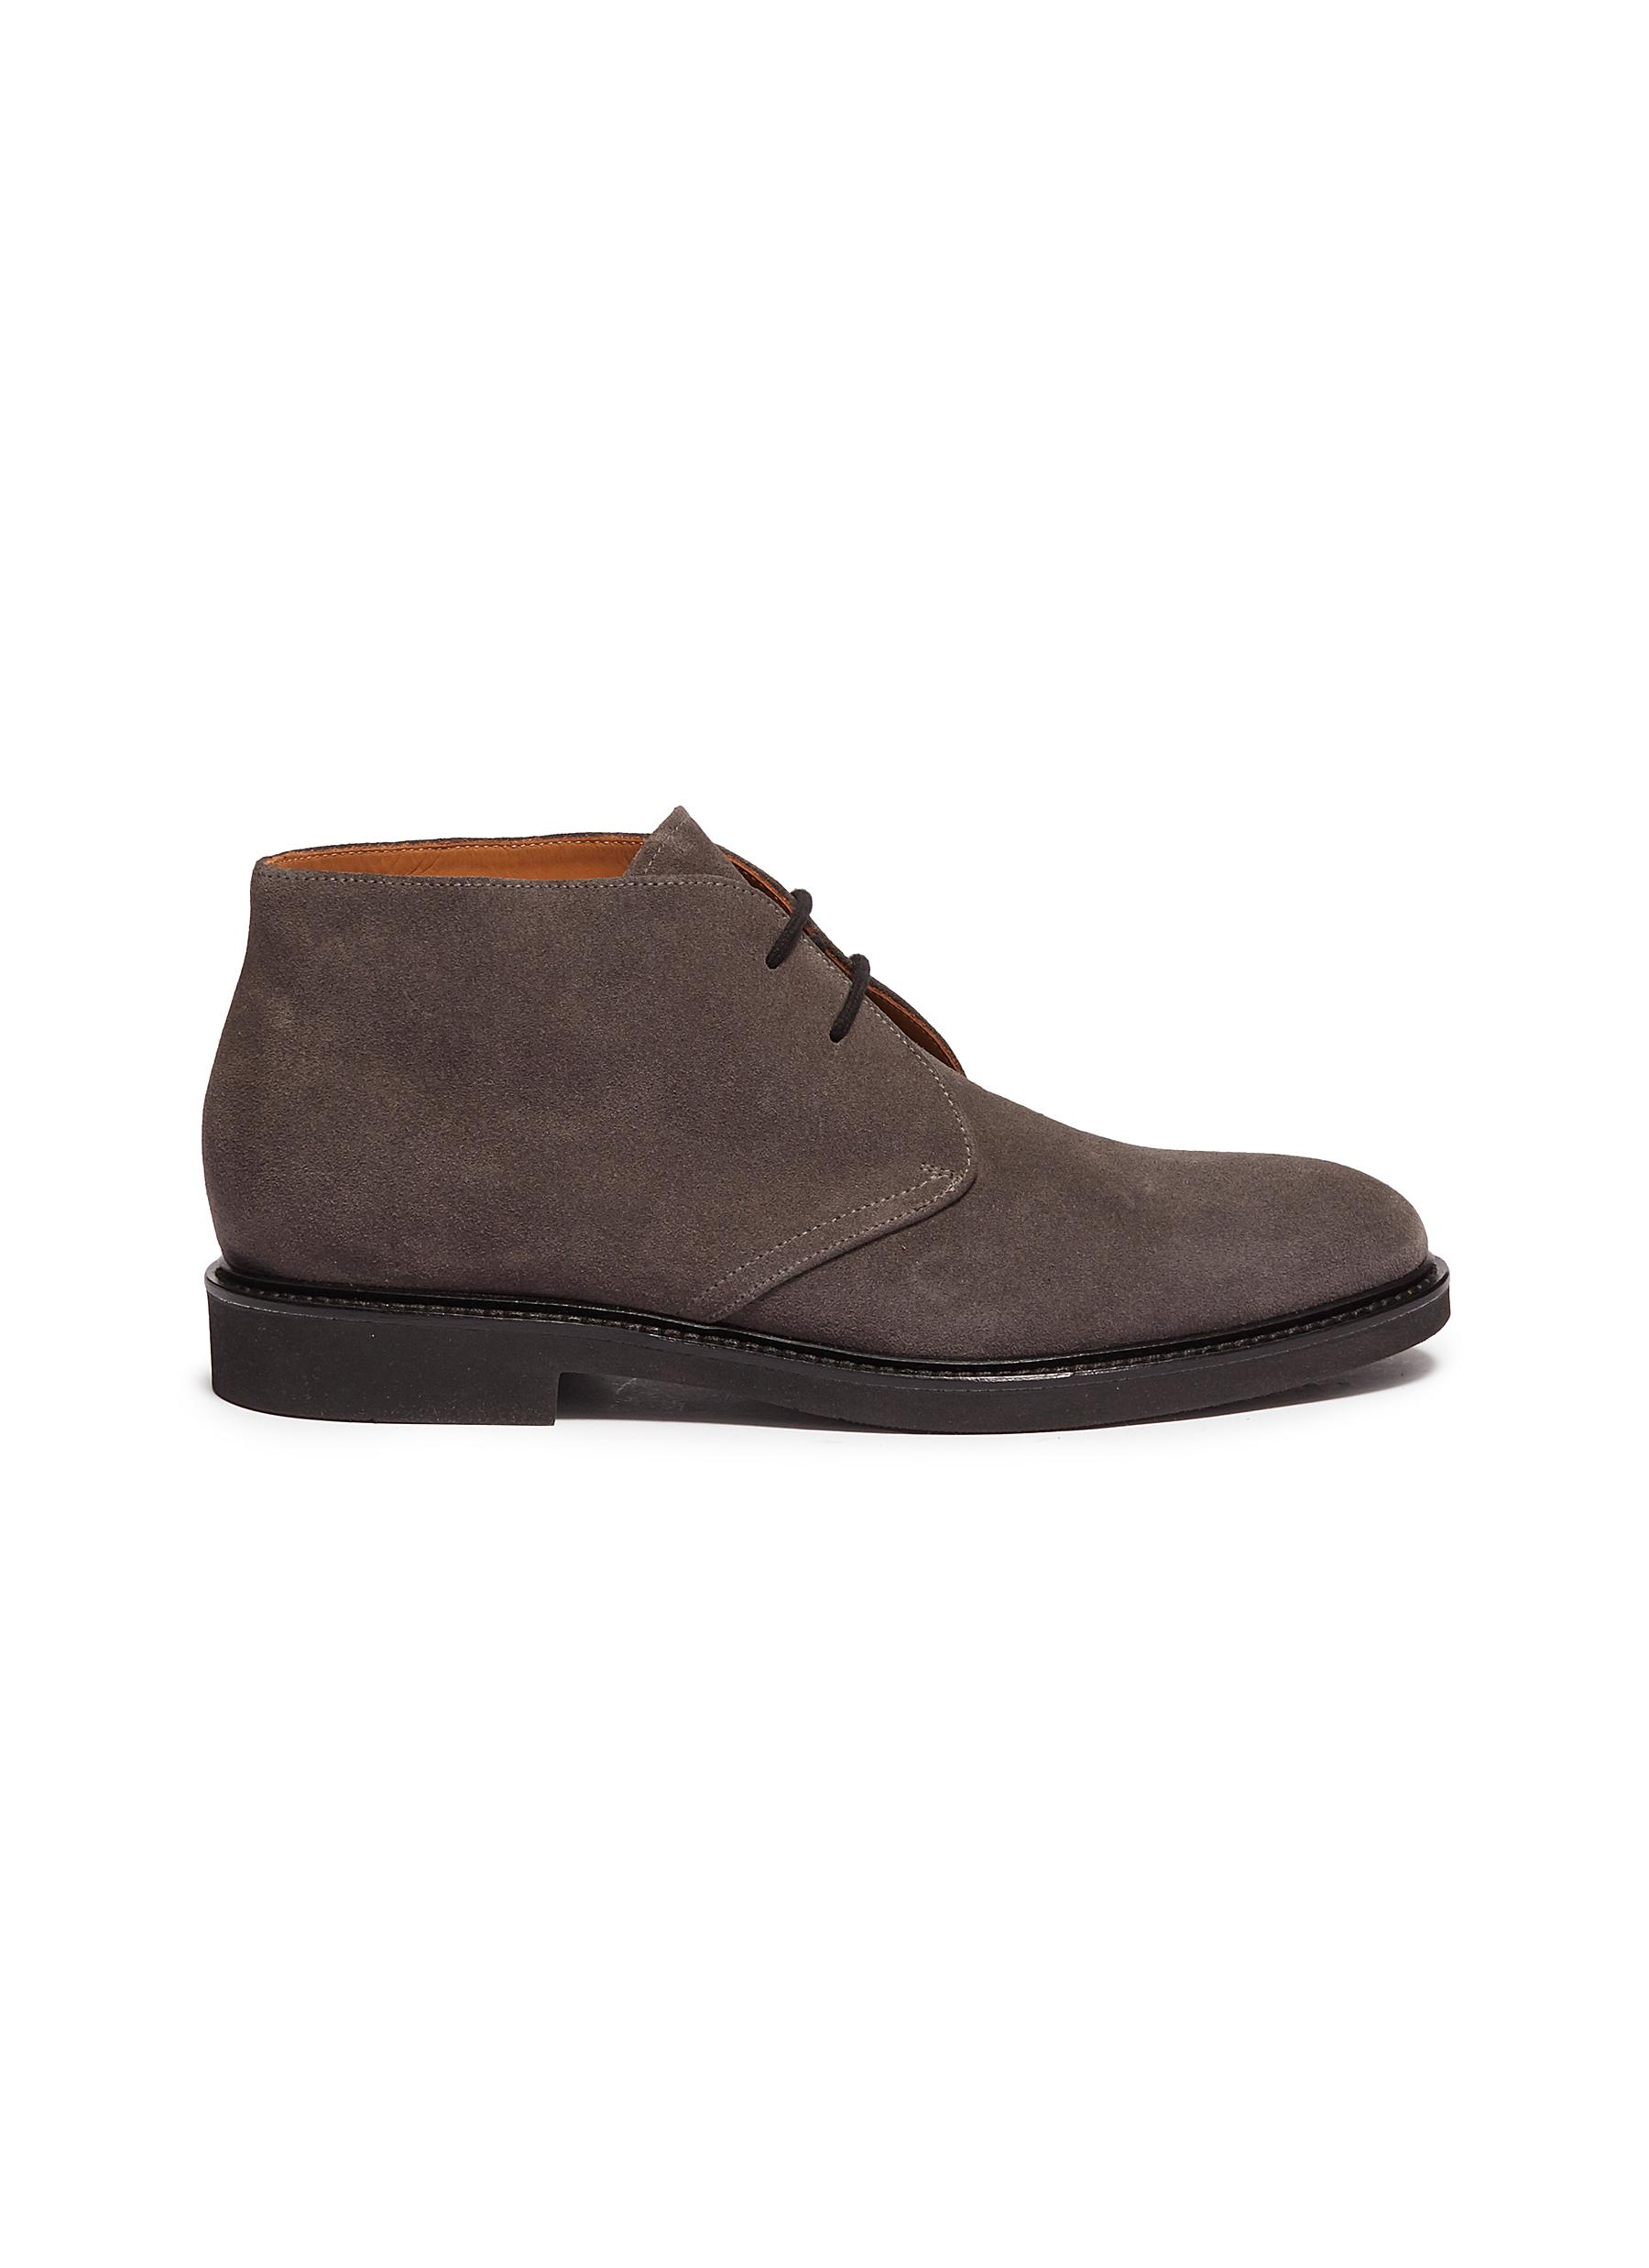 Visone Suede chukka boots by Doucal's